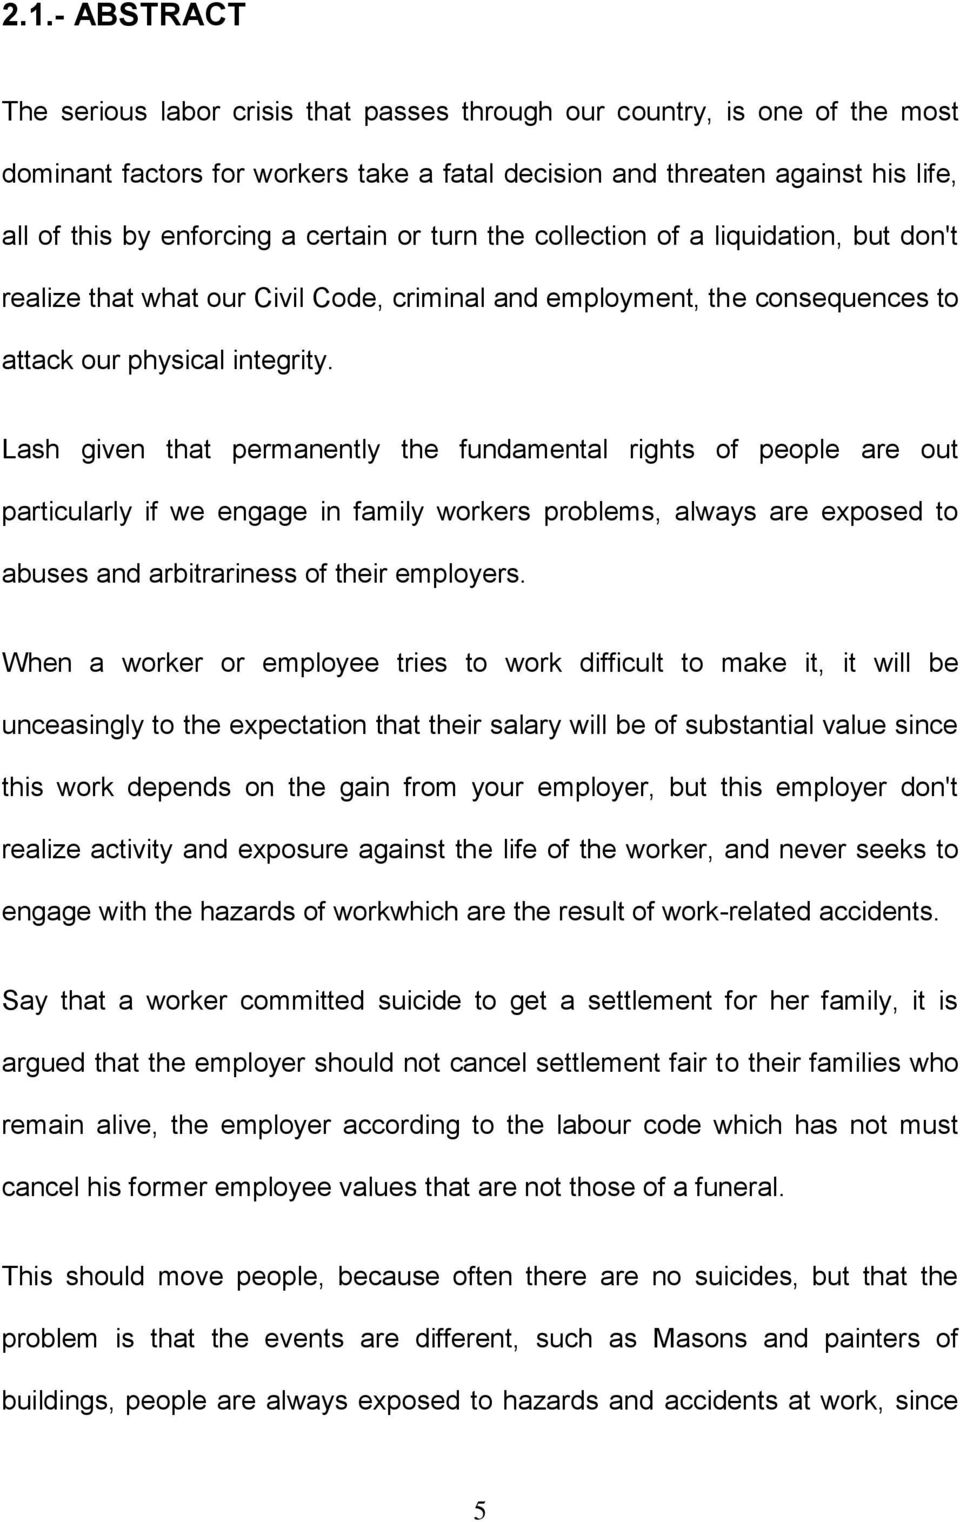 Lash given that permanently the fundamental rights of people are out particularly if we engage in family workers problems, always are exposed to abuses and arbitrariness of their employers.